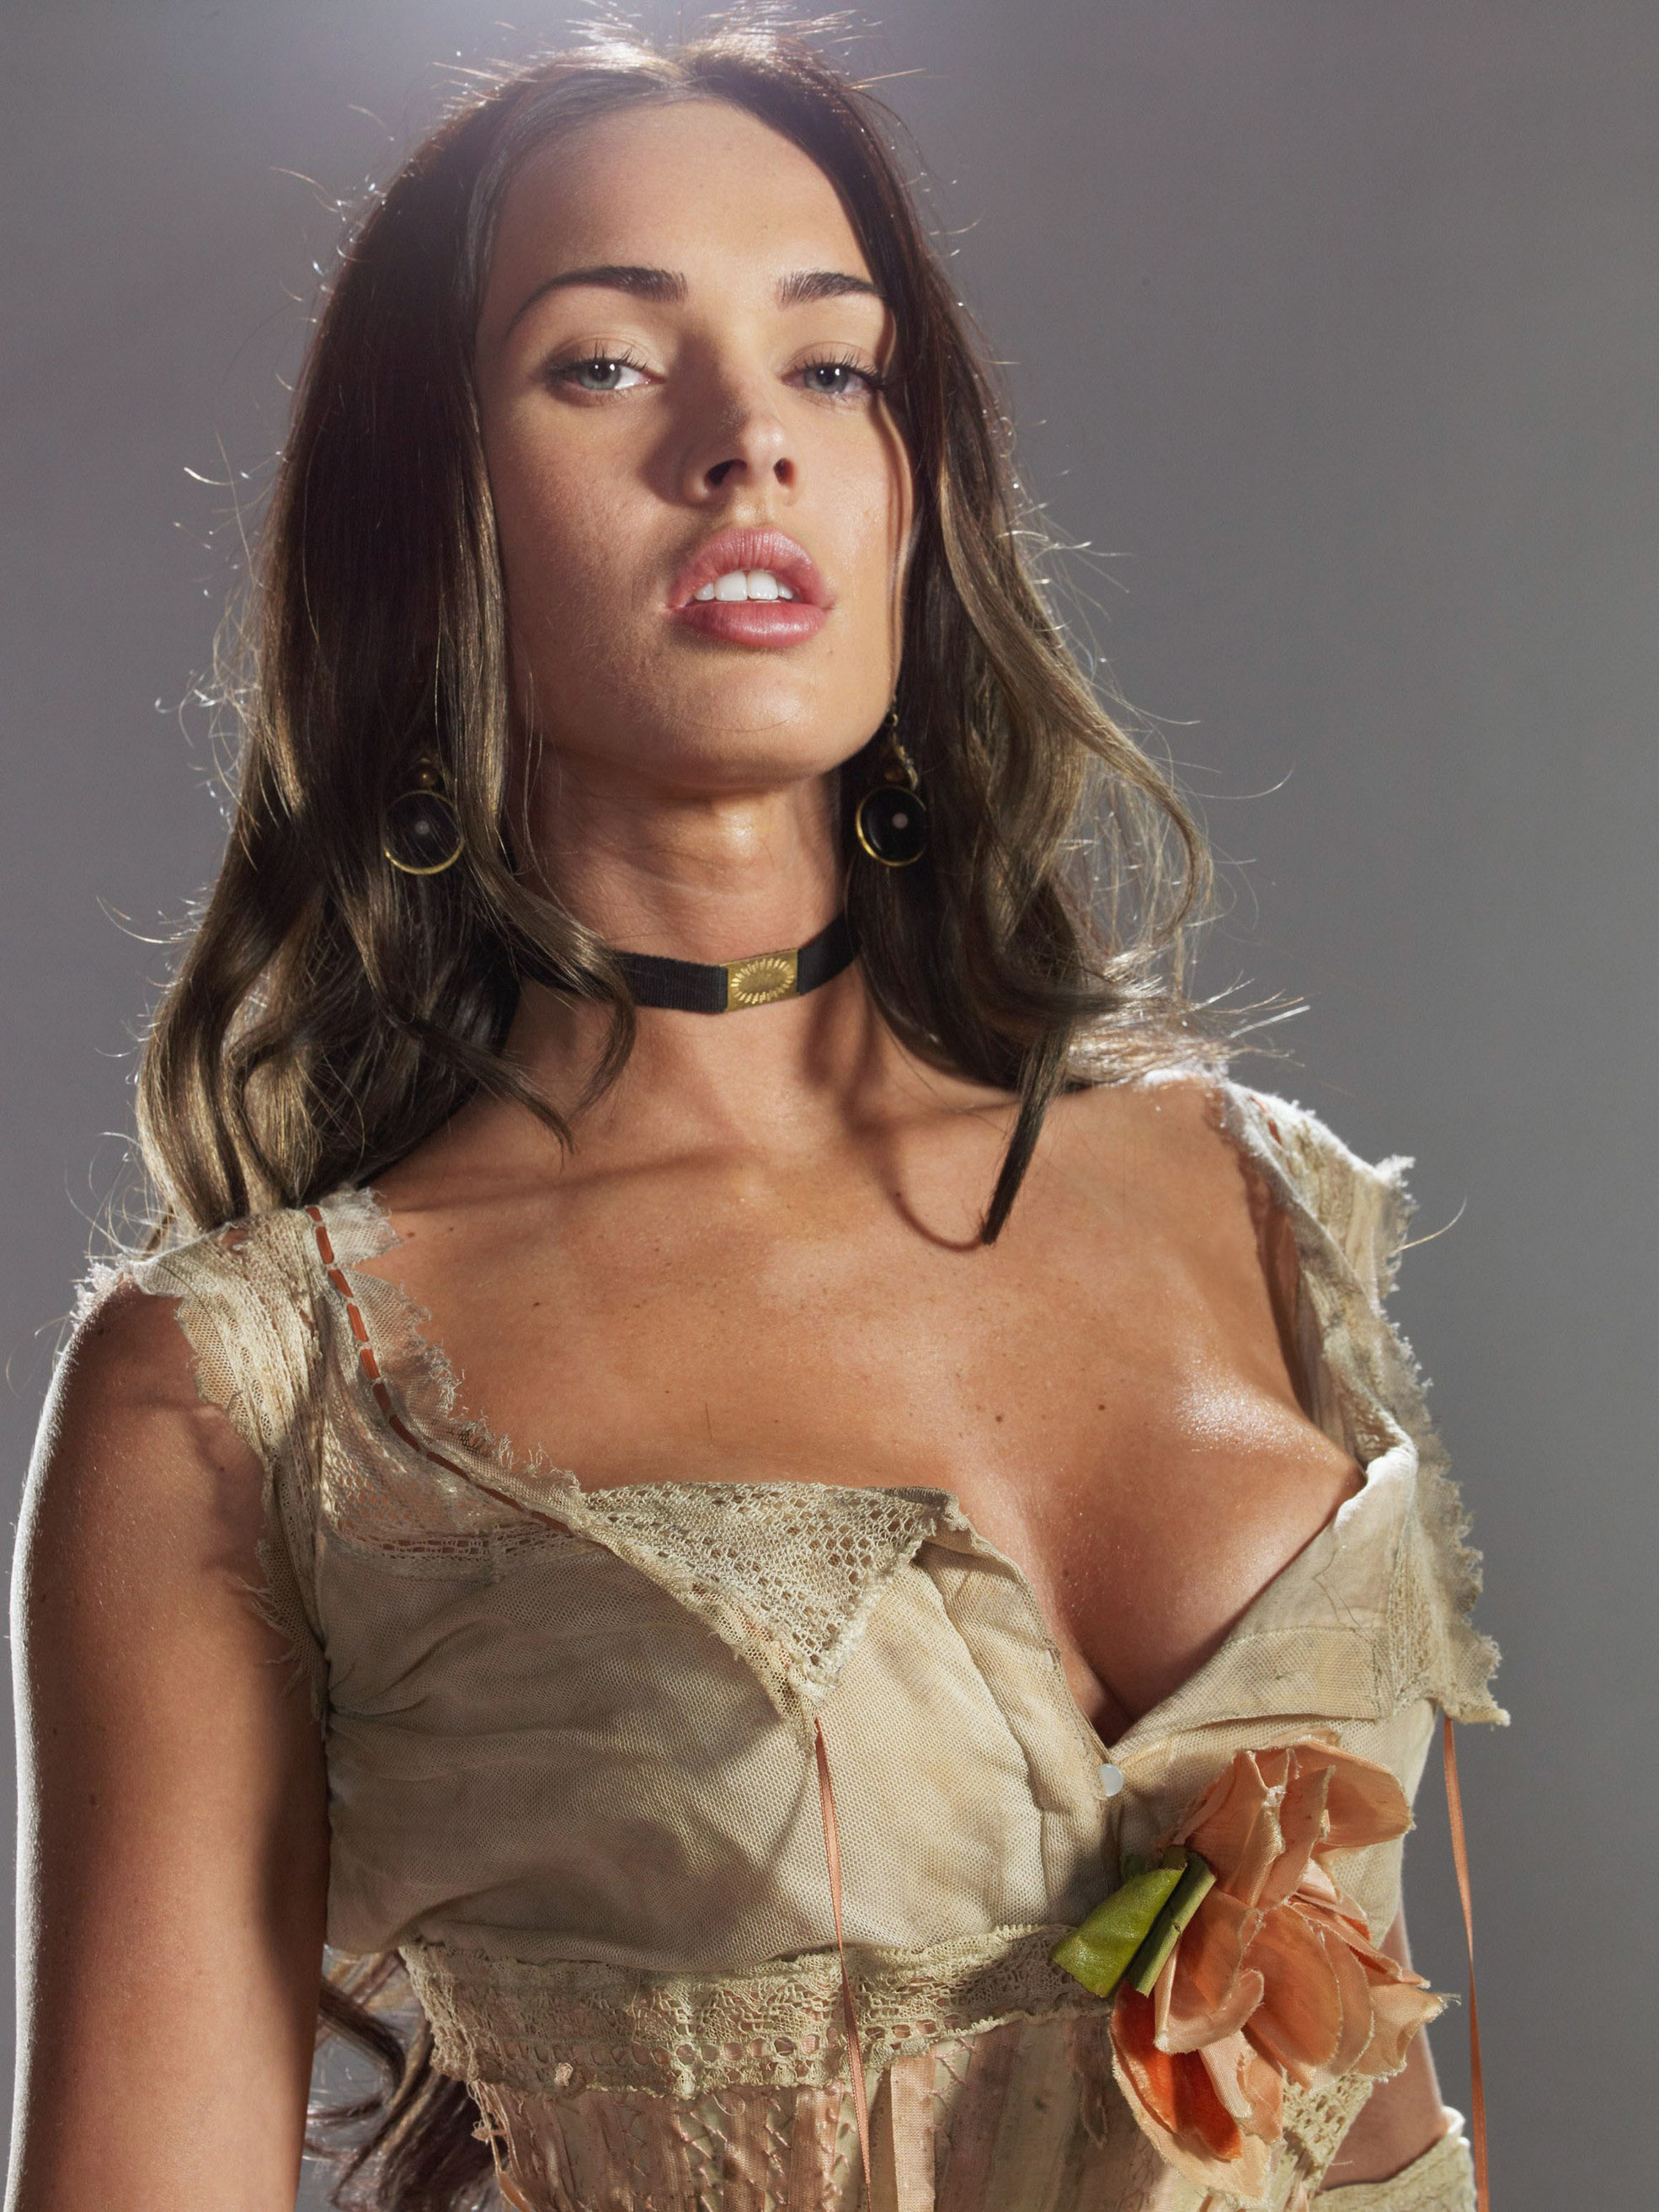 Megan_Fox_-_Jonah_Hex_promotional_shoot_05